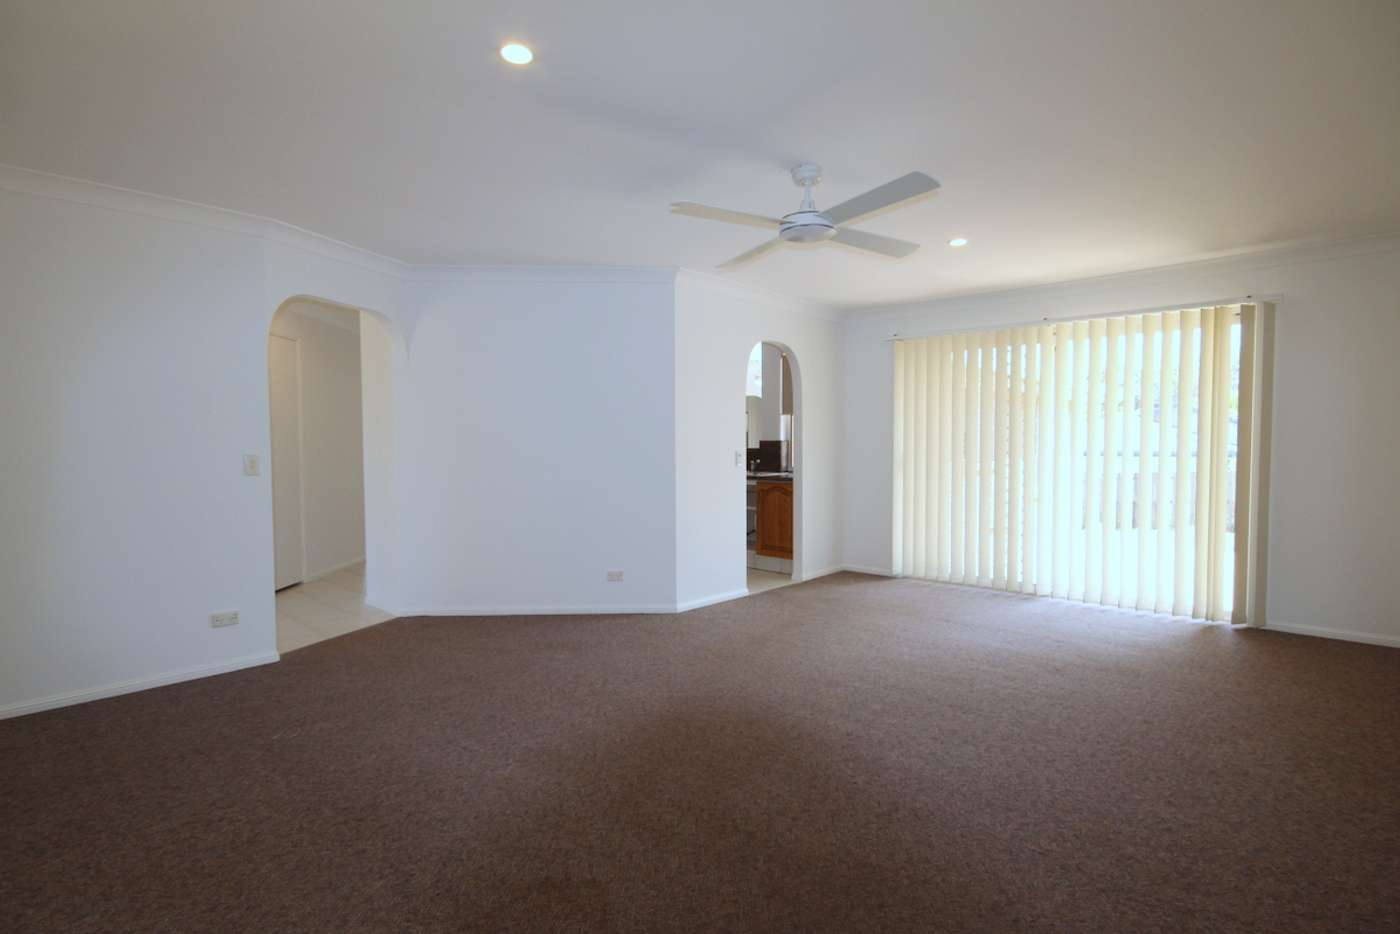 Main view of Homely house listing, 67 HICKEY WAY, Carrara QLD 4211